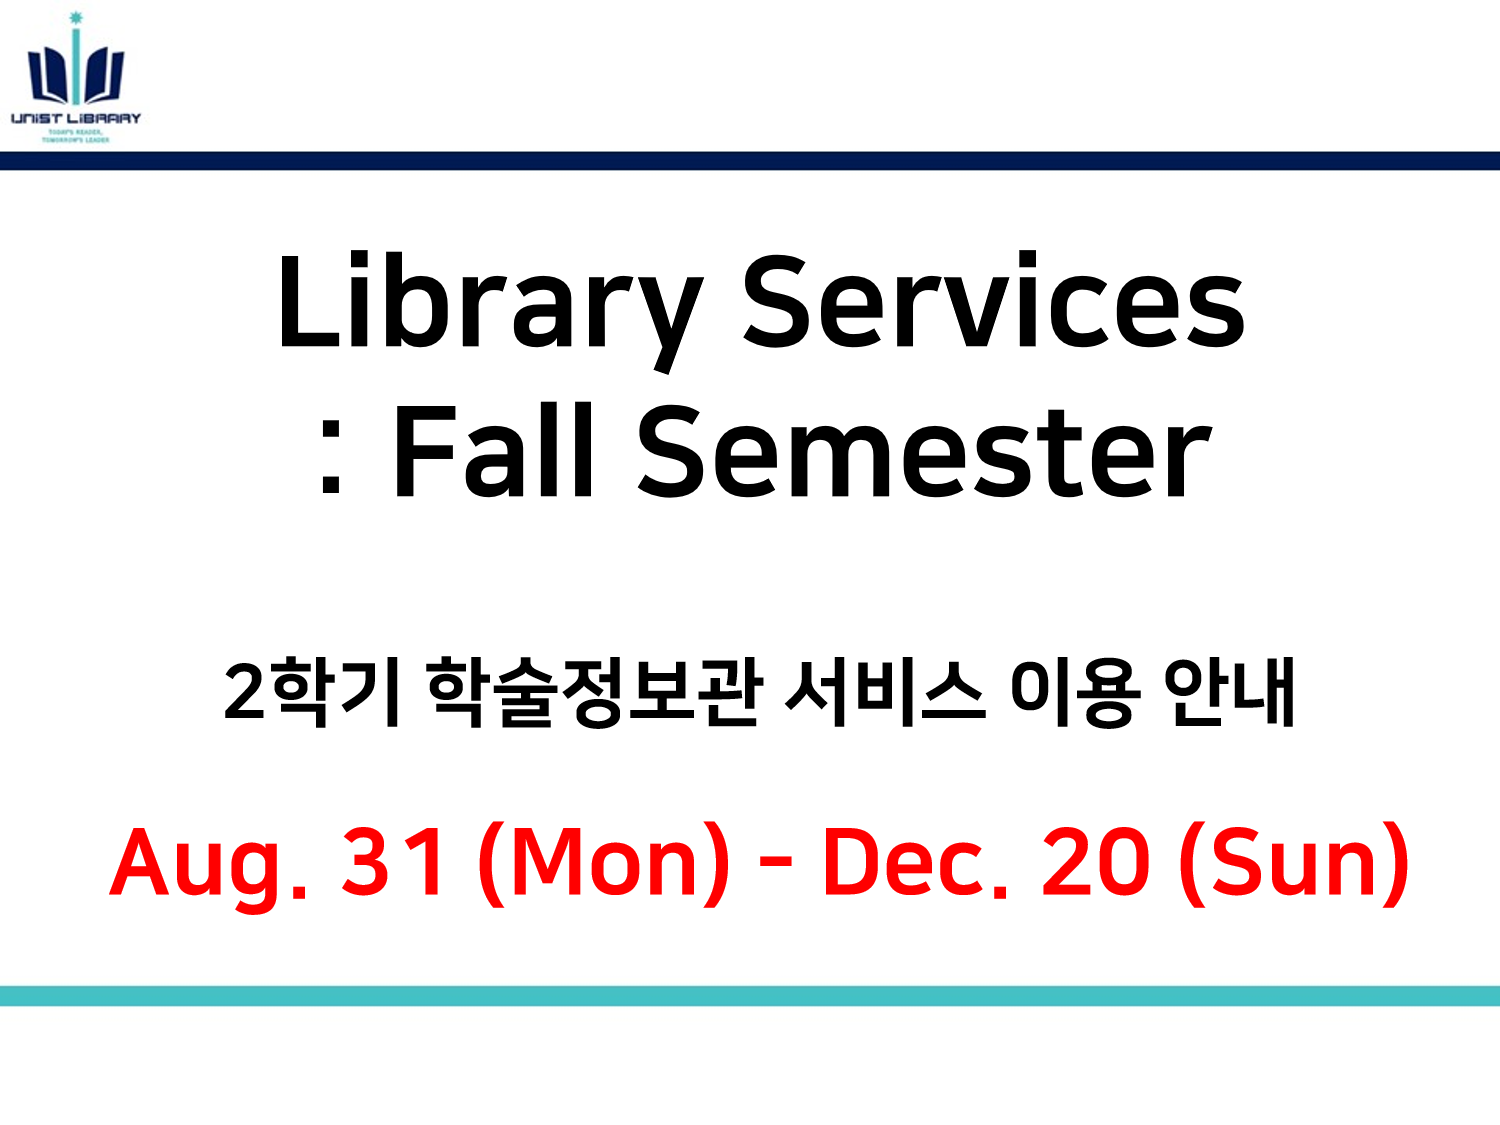 Library Services: Fall Semester (Aug. 31 - Dec. 20)